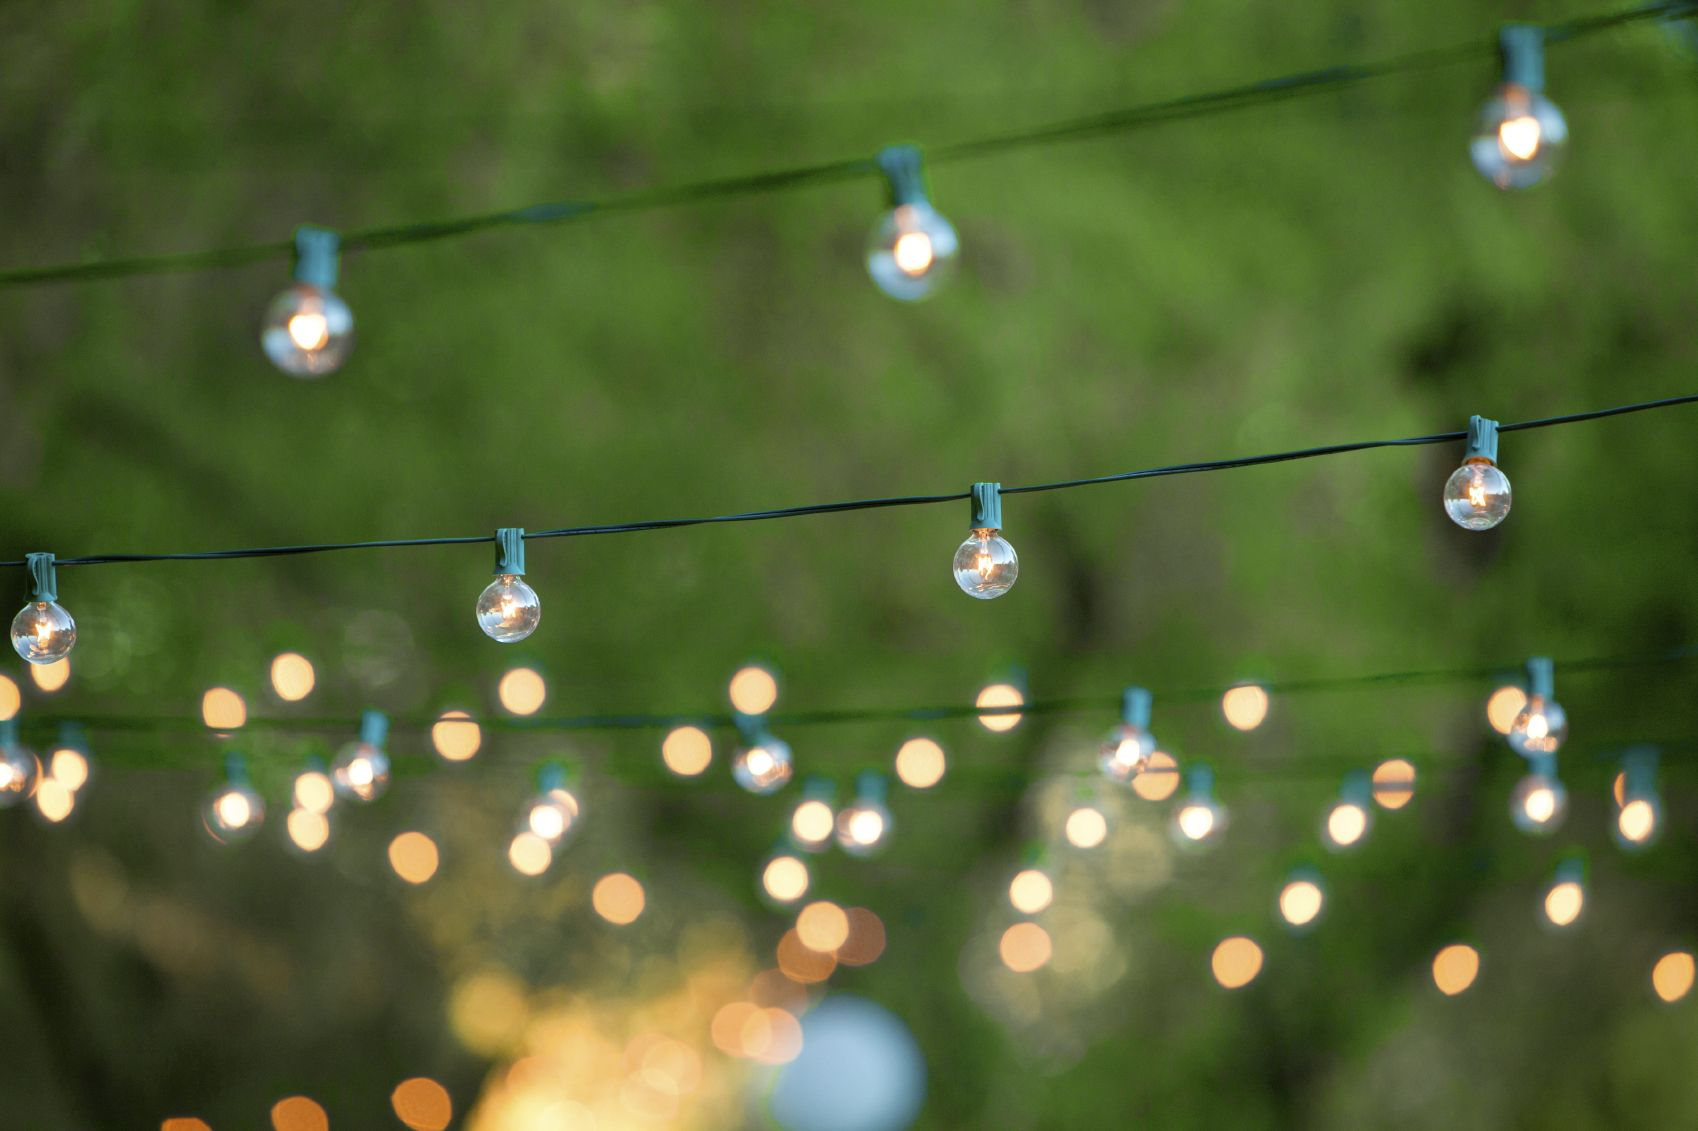 Diy outdoor party lighting top 10 methods warisan lighting by investigating getting yourself diy outdoor party lighting you can keep the party going throughout the night workwithnaturefo